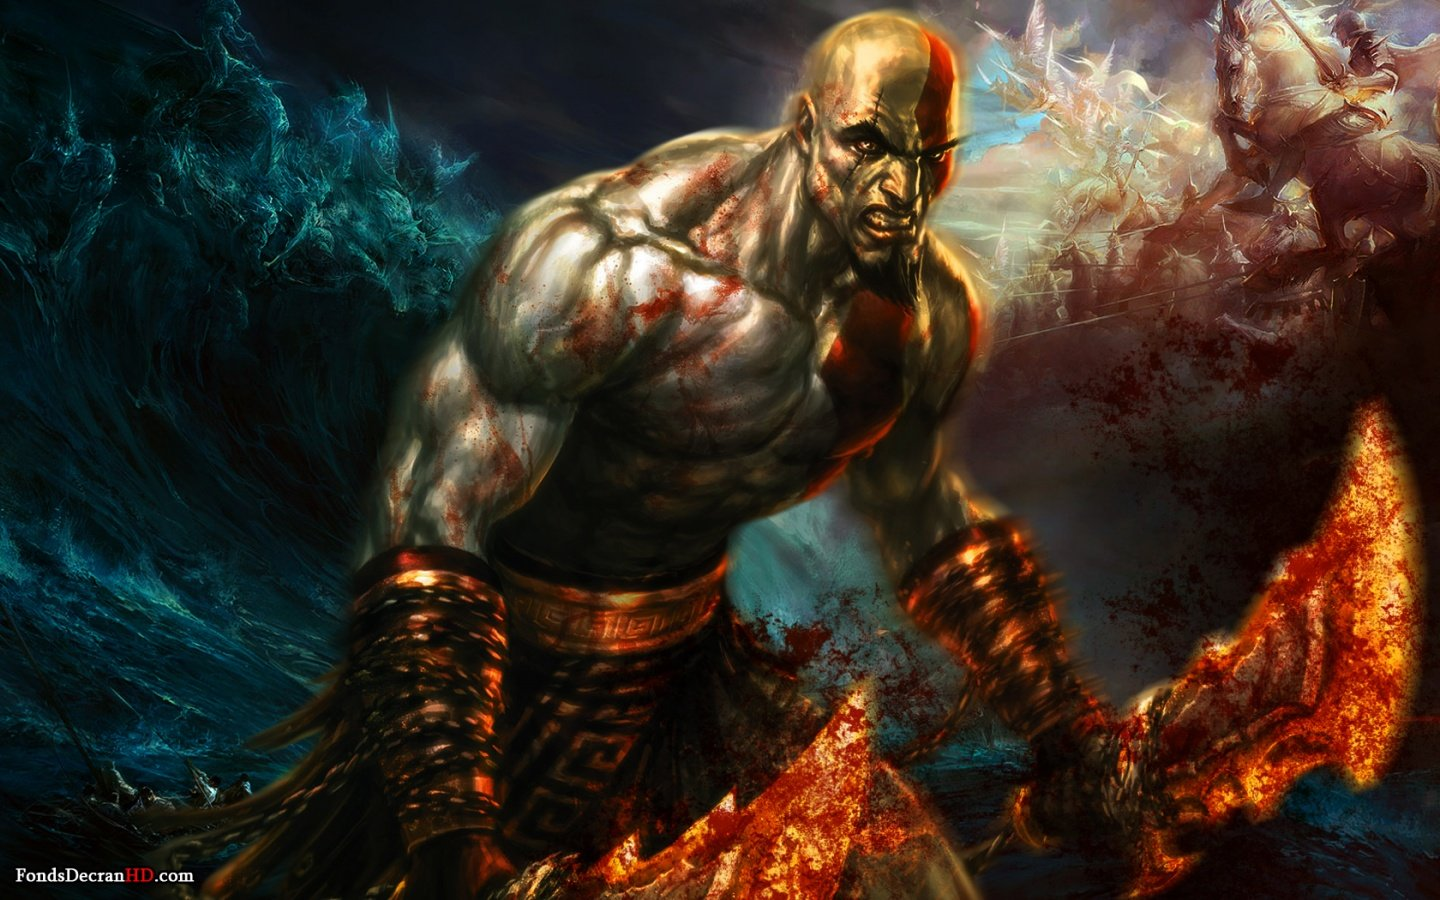 God Of War 3 HD wallpaper 1440x900